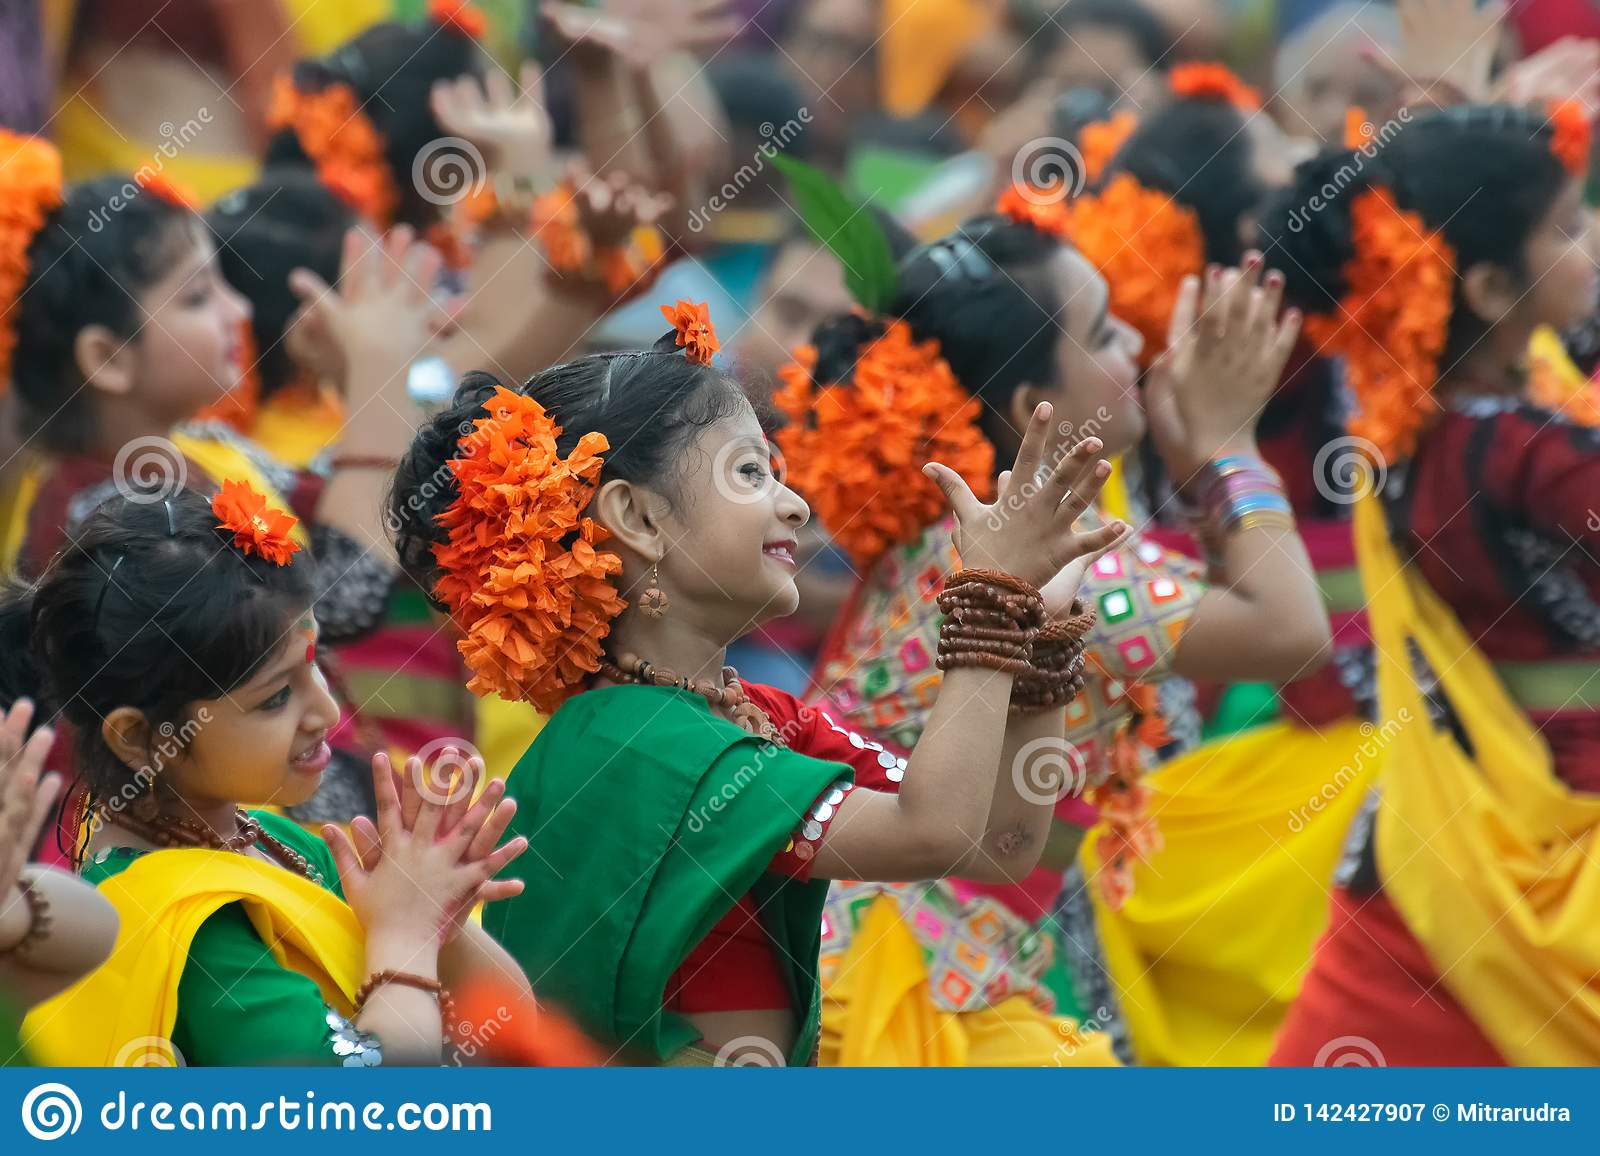 Young girls dancing at Holi / spring festival